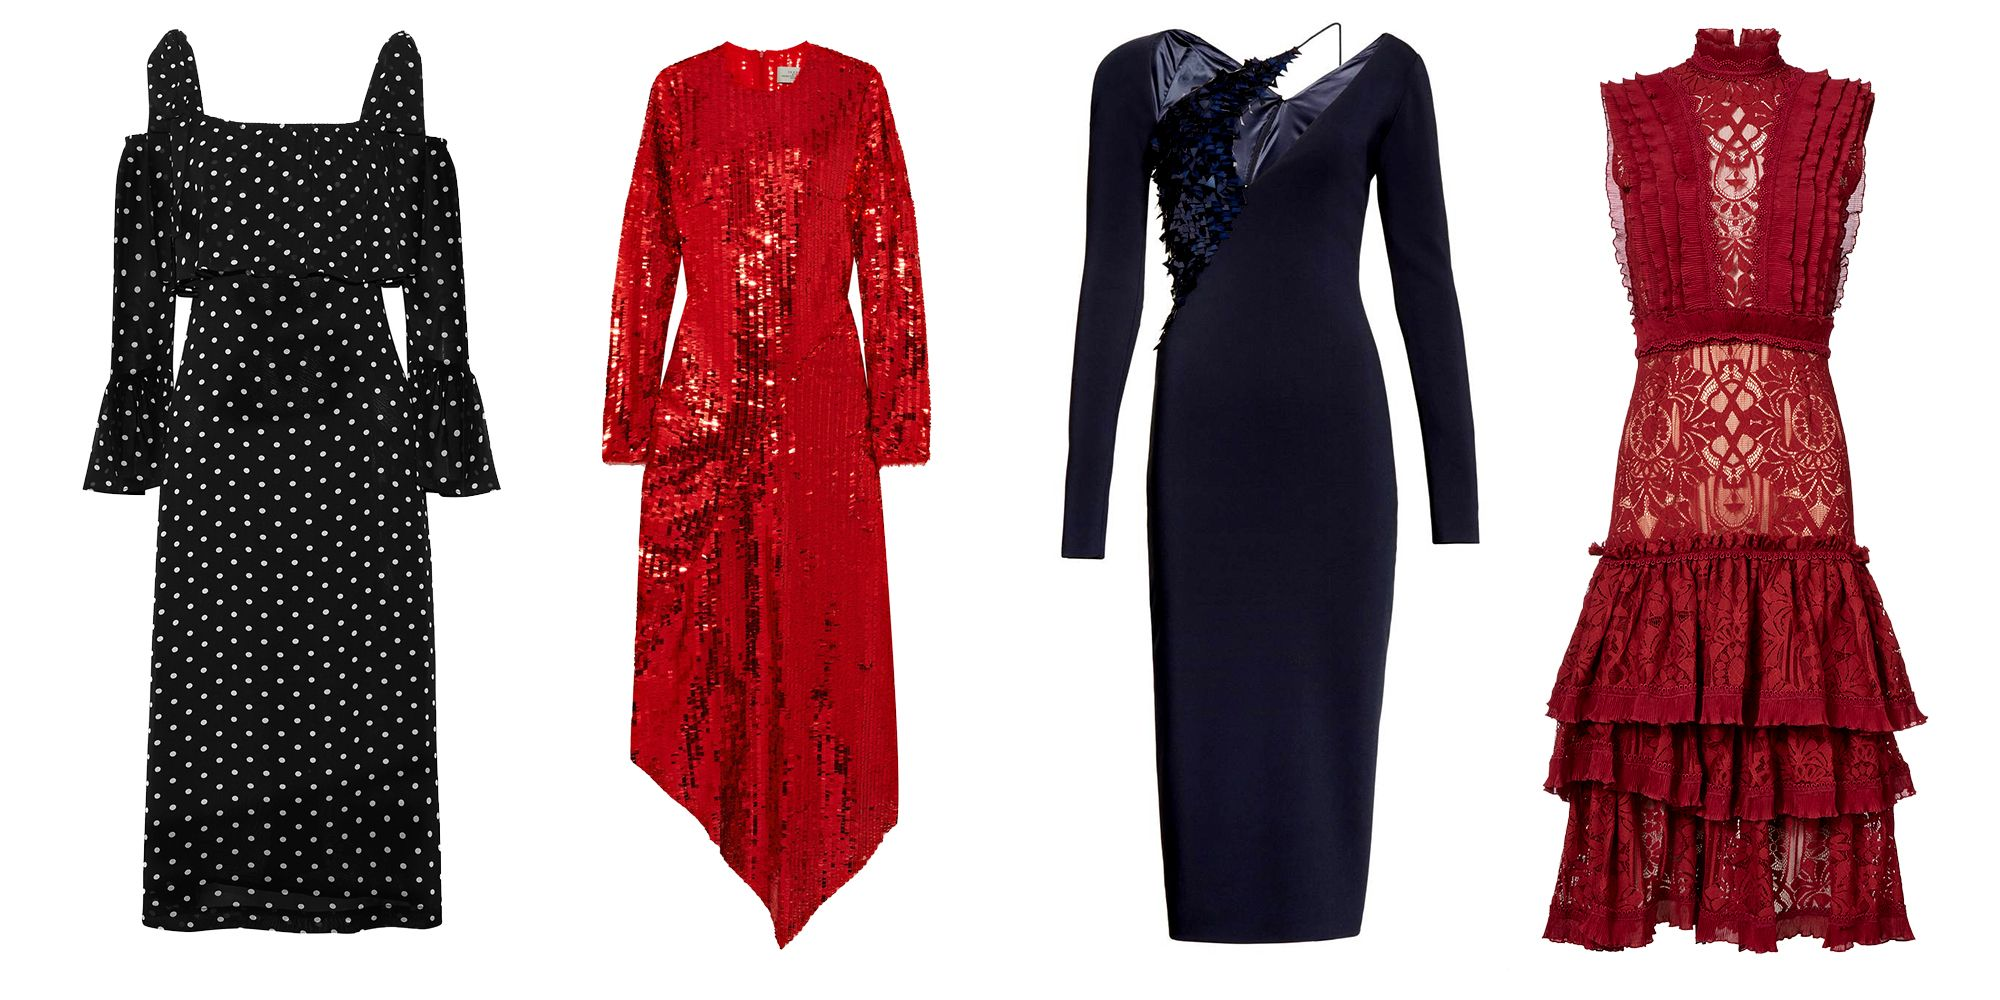 Dress For A Winter Wedding In Jewel Tone Velvets, Long Sleeves, Heavy  Embroidery, And Everything Else You Couldnu0027t Get Away With At A Sweltering  July ...